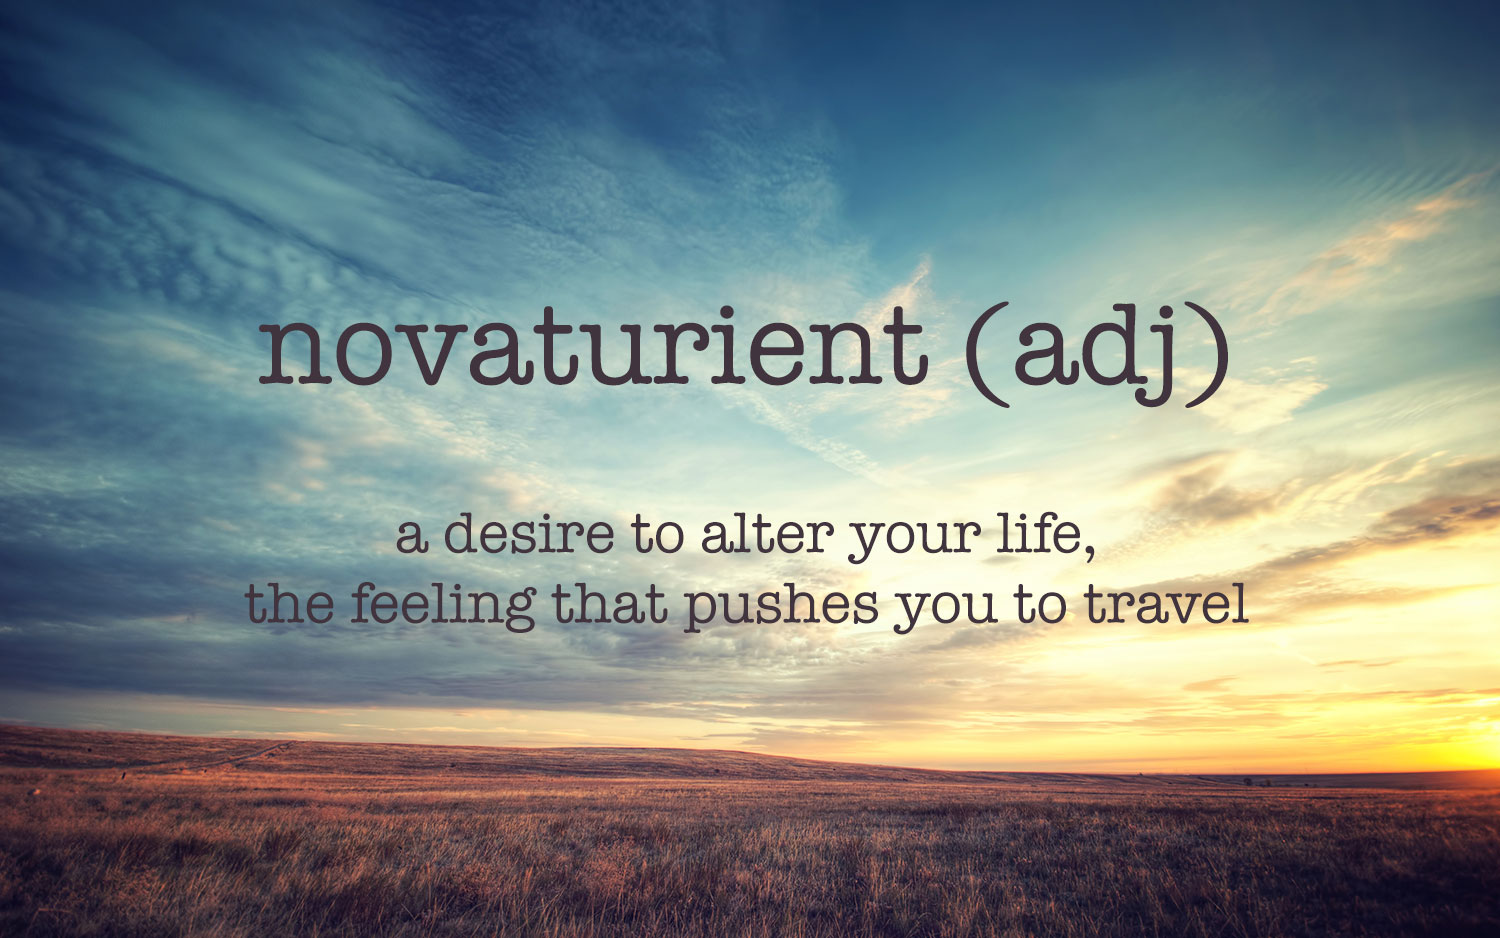 picture of landscape with text overlay of the definition of novaturient